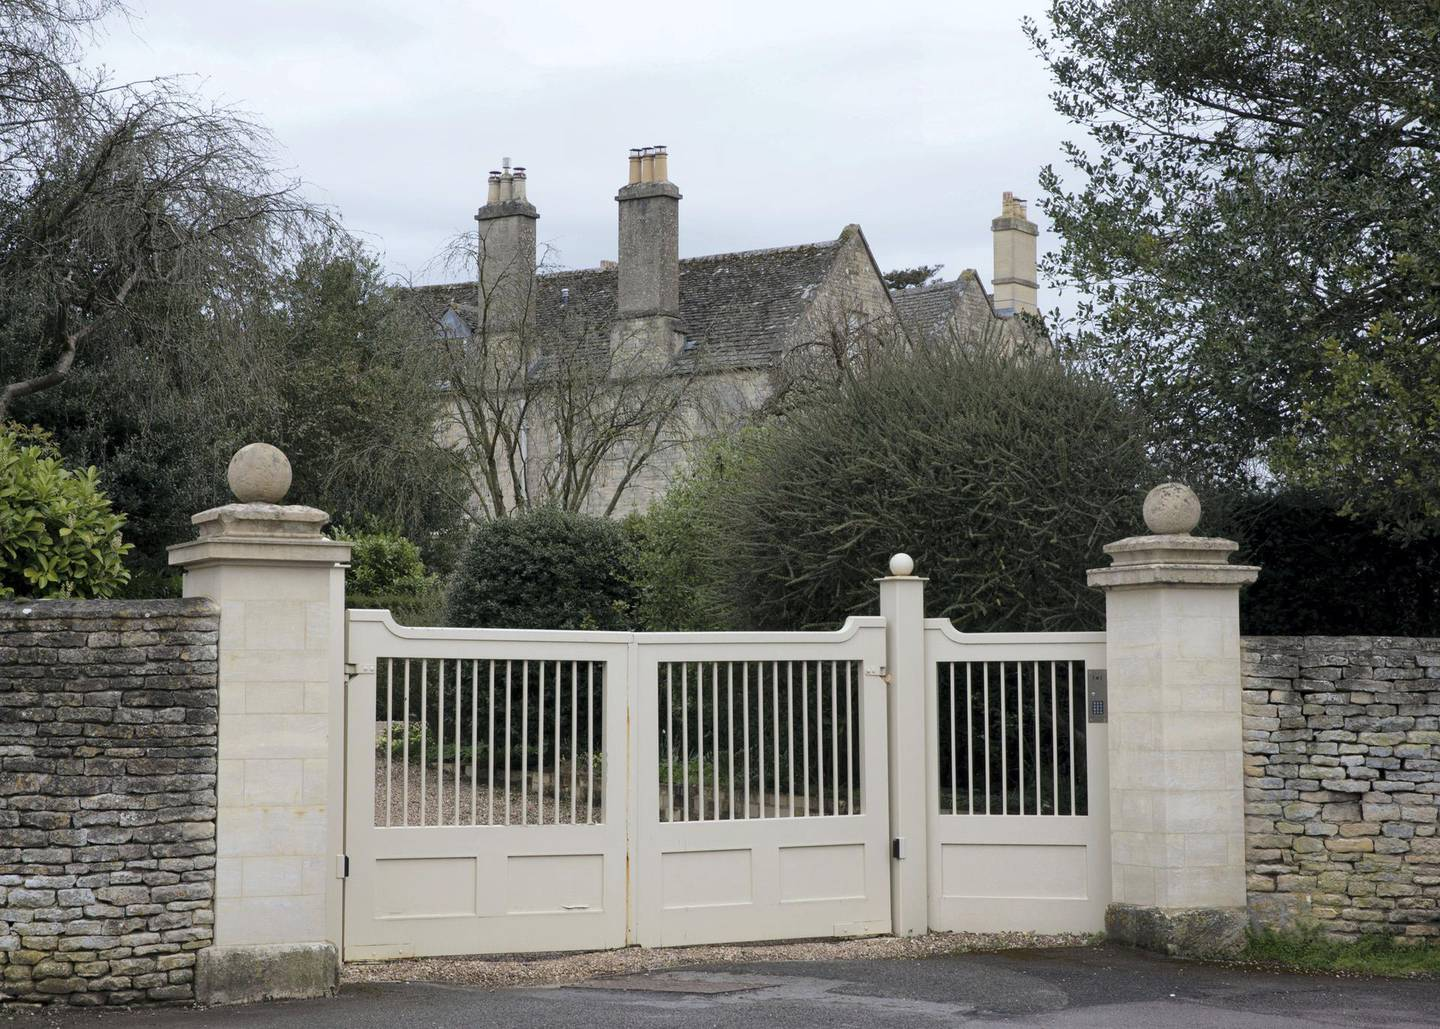 WOOTTON, OXFORDSHIRE, UK. 5th April 2019. Exterior of Wootton Place, the estate of businessman Arif Naqvi in the village of Wootton, United Kingdom Stephen Lock for The National . Words: Paul Peachey.